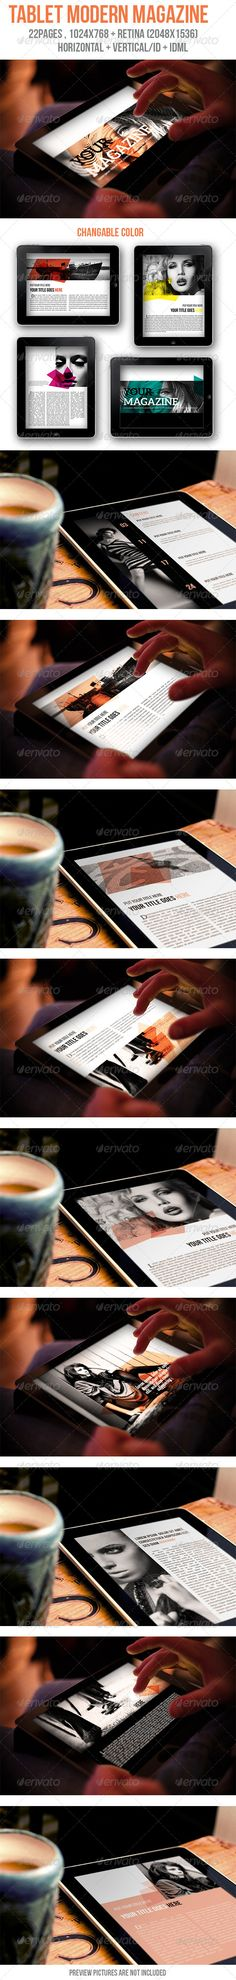 Tablet Modern Magazine - Digital Magazines ePublishing